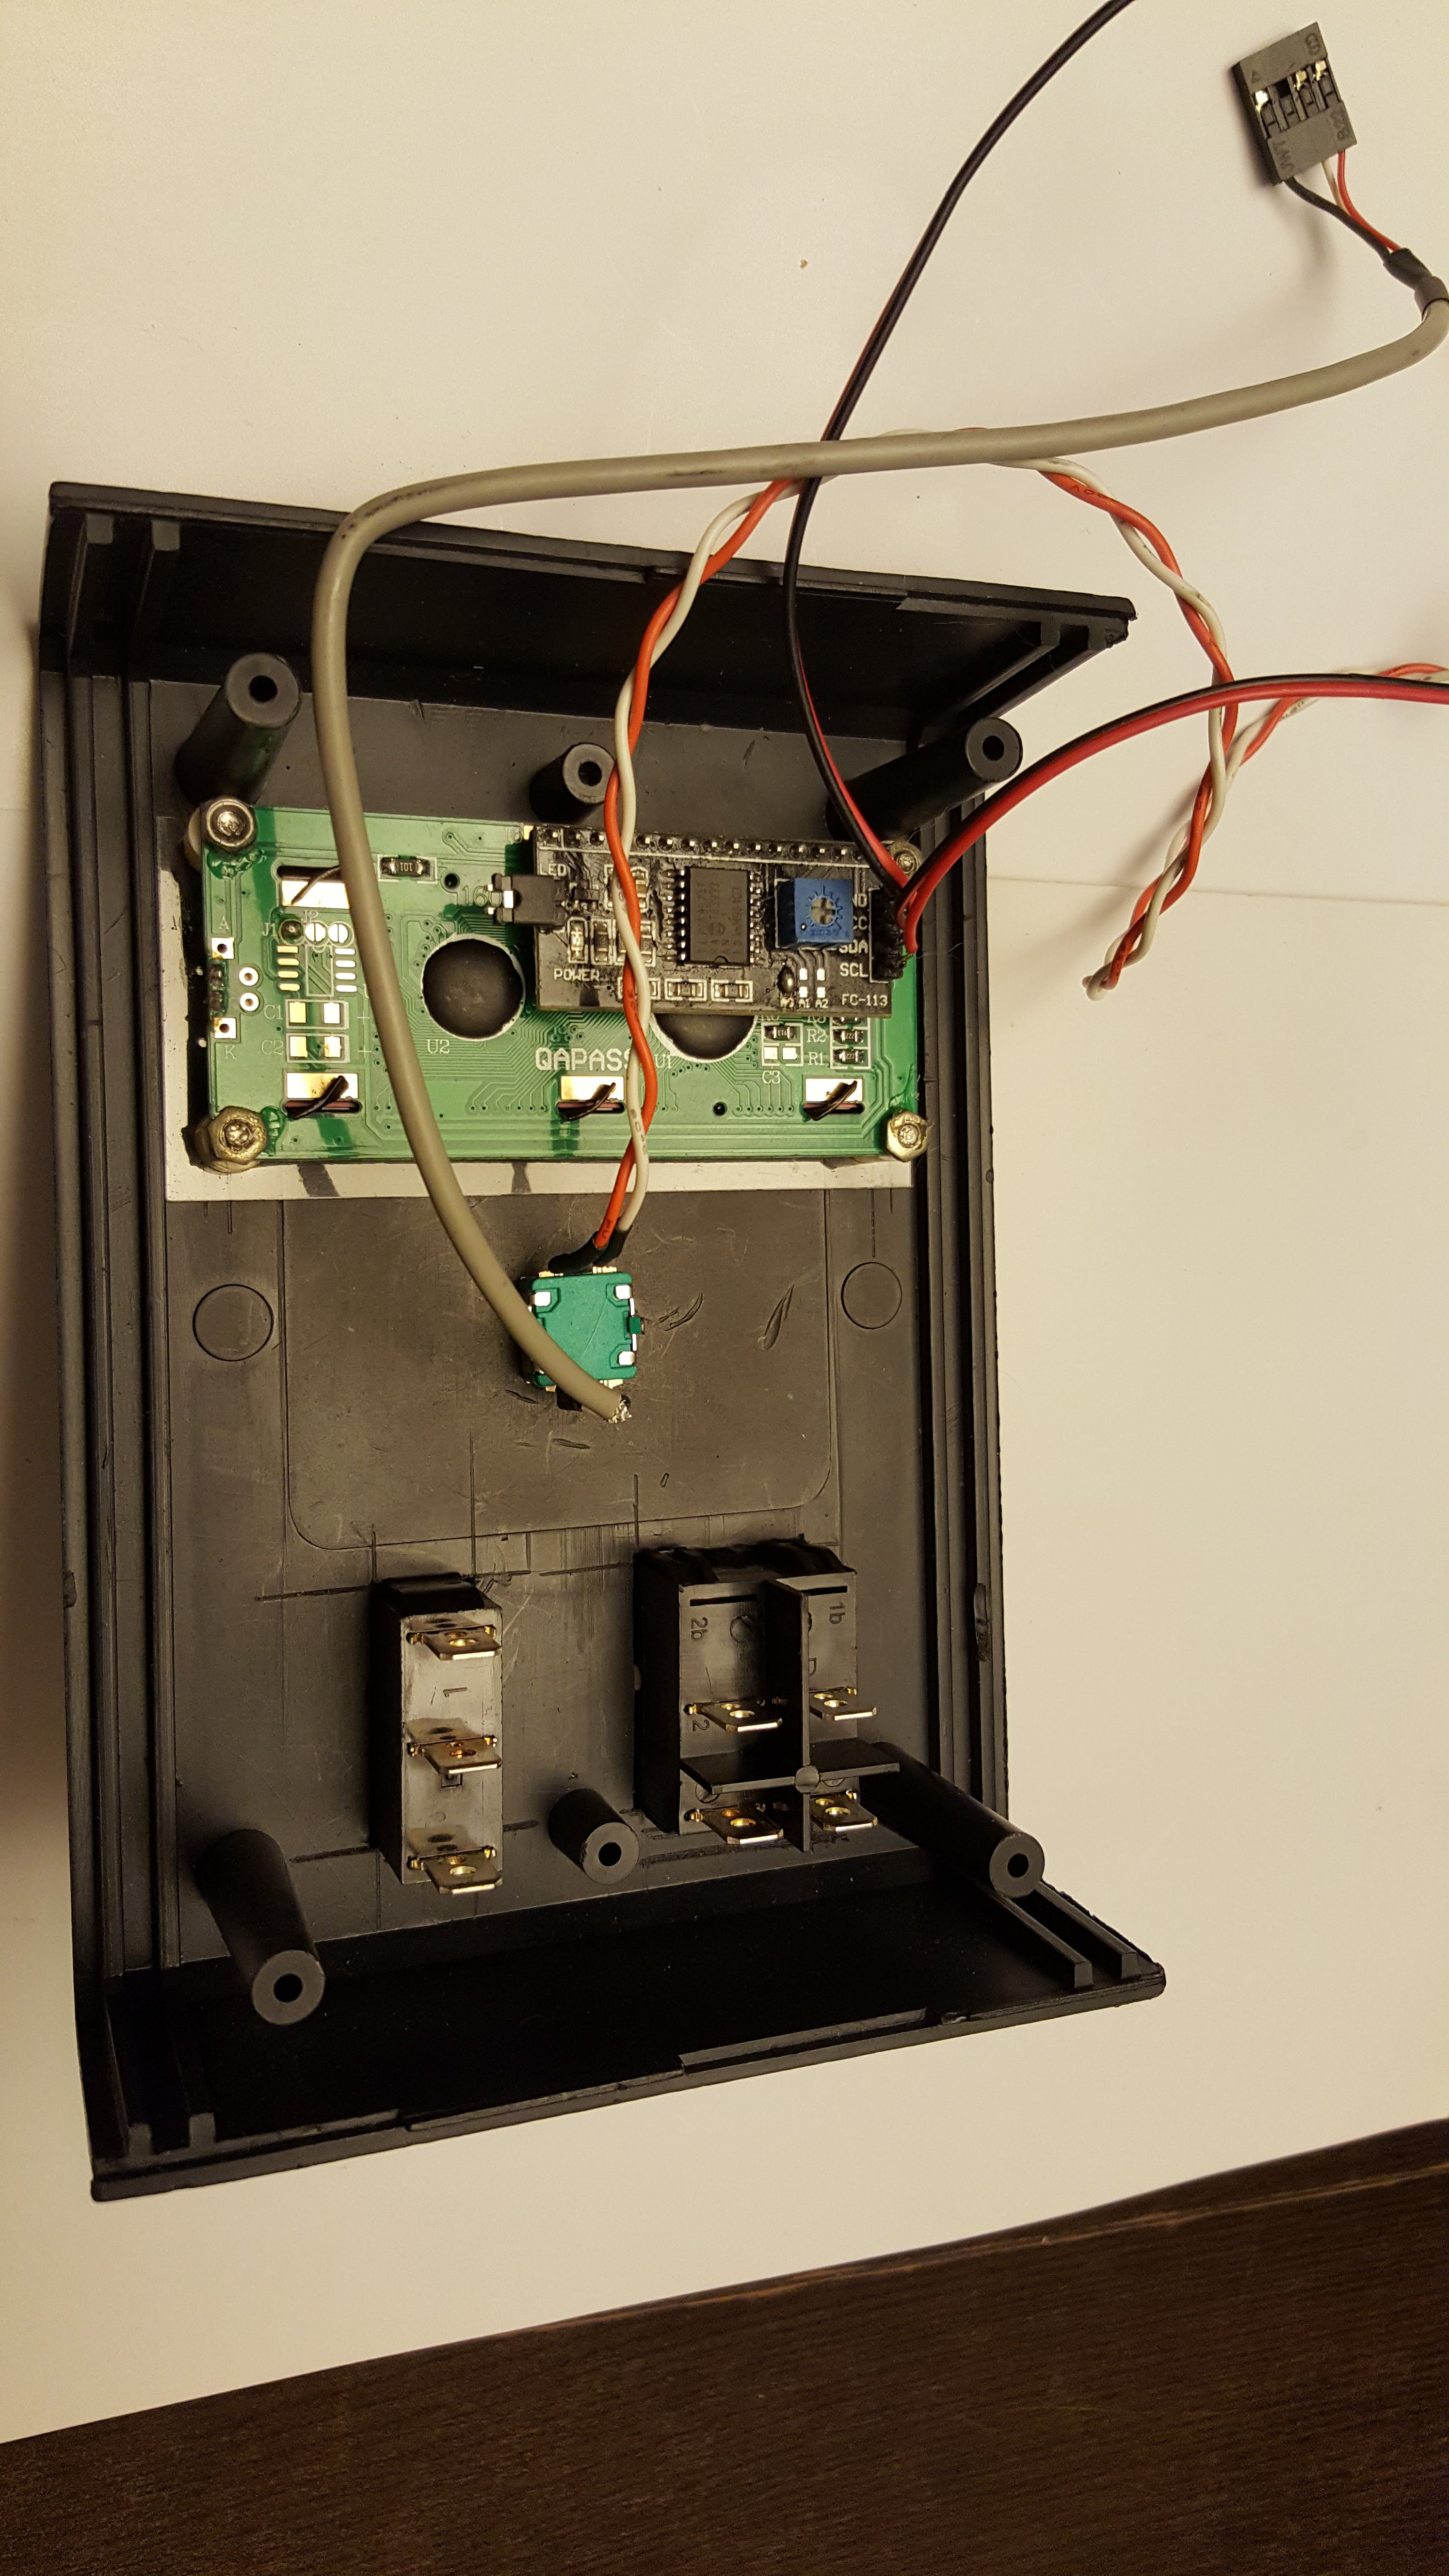 Notice the I2C module on LCD